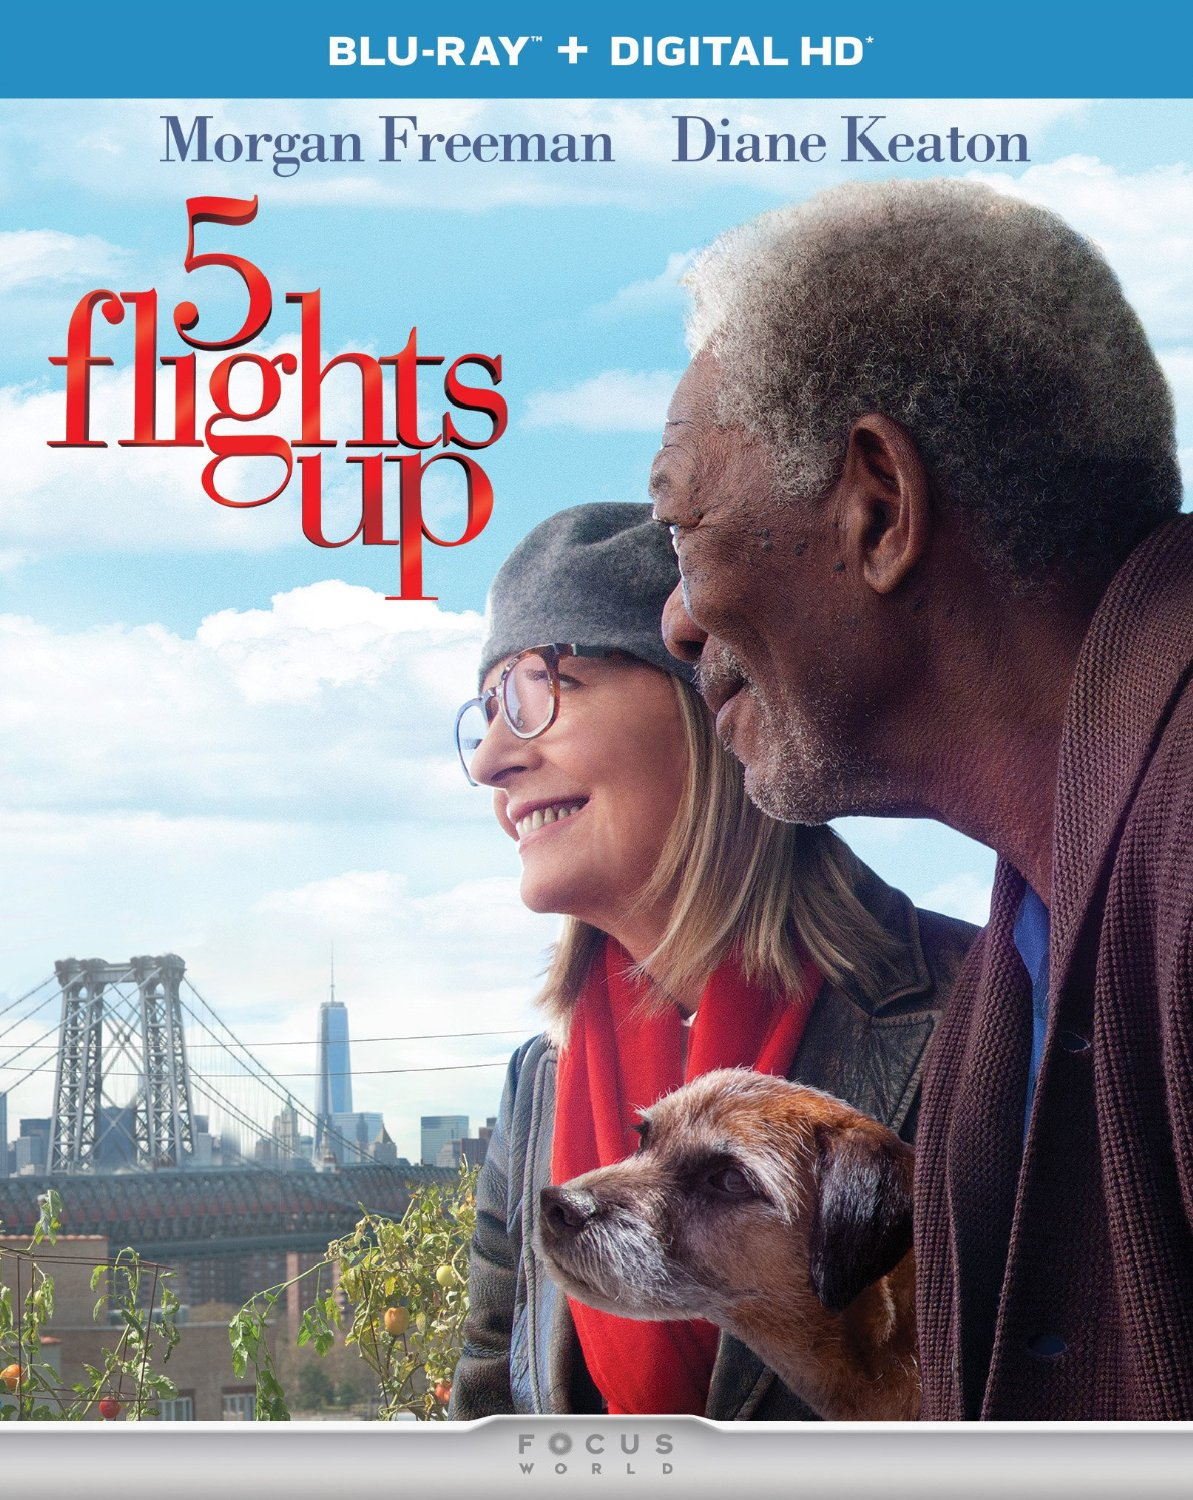 5 Flights Up Blu-ray Review